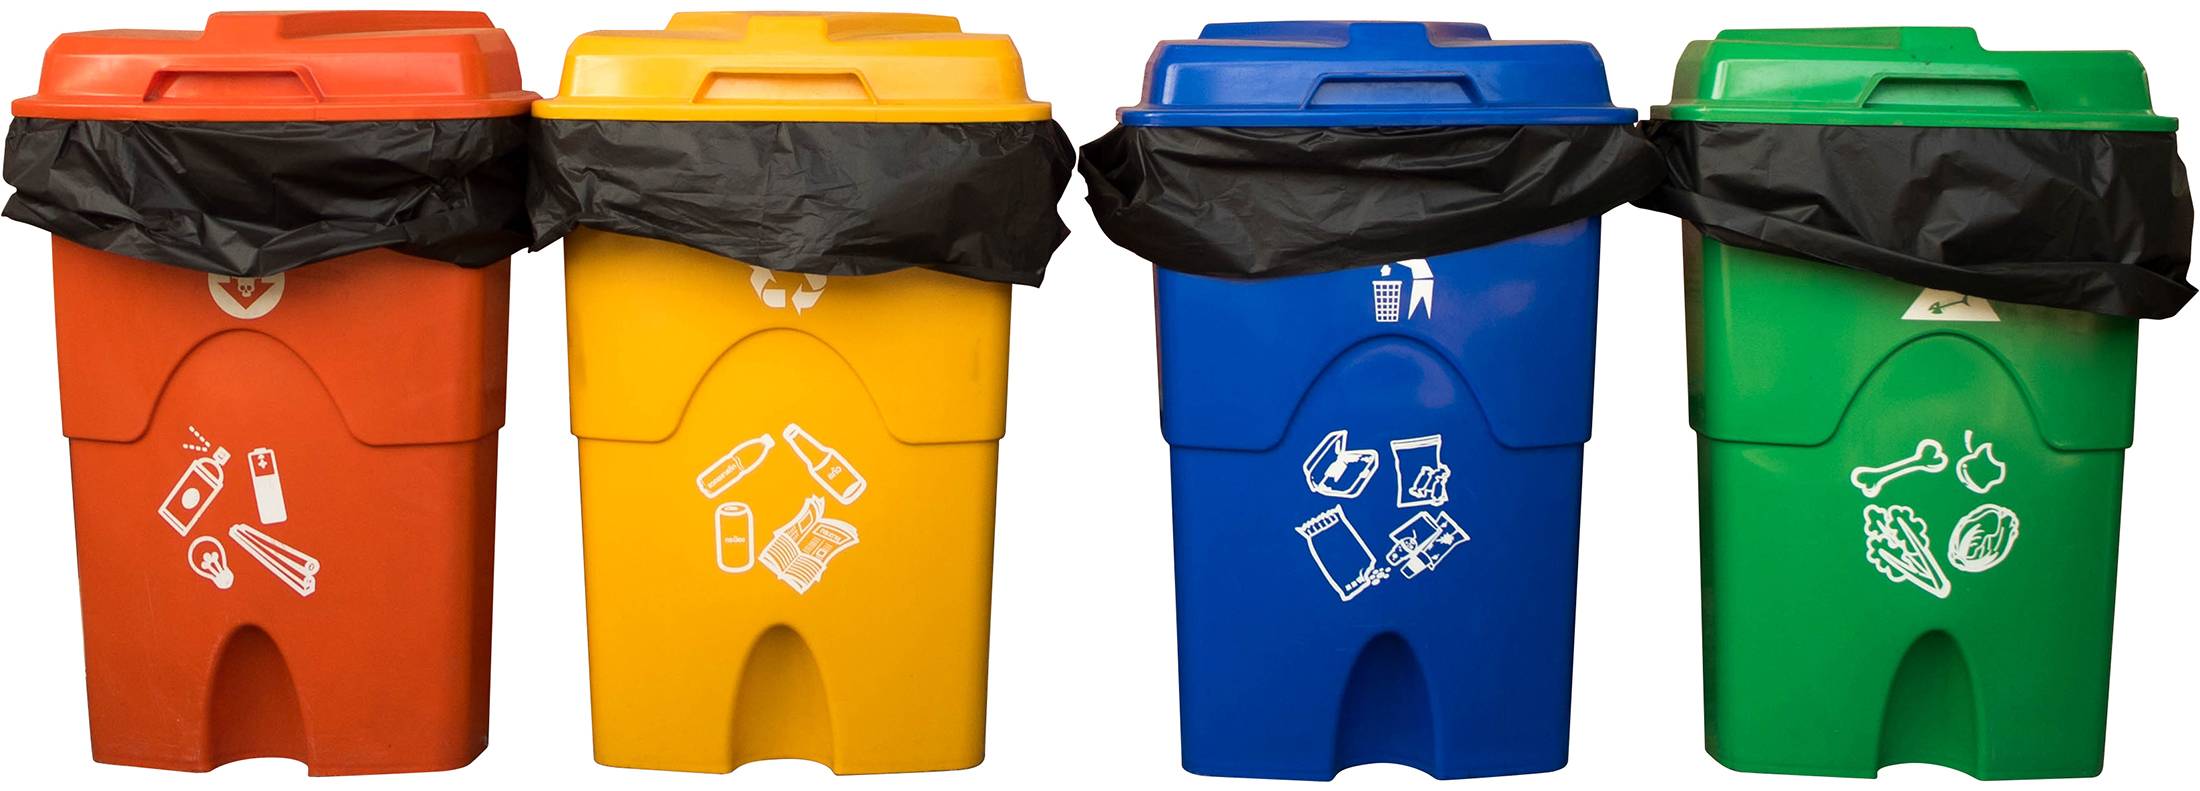 https://www.retrieverwaste.com/wp-content/uploads/2016/06/colored-recycling-bins.jpg